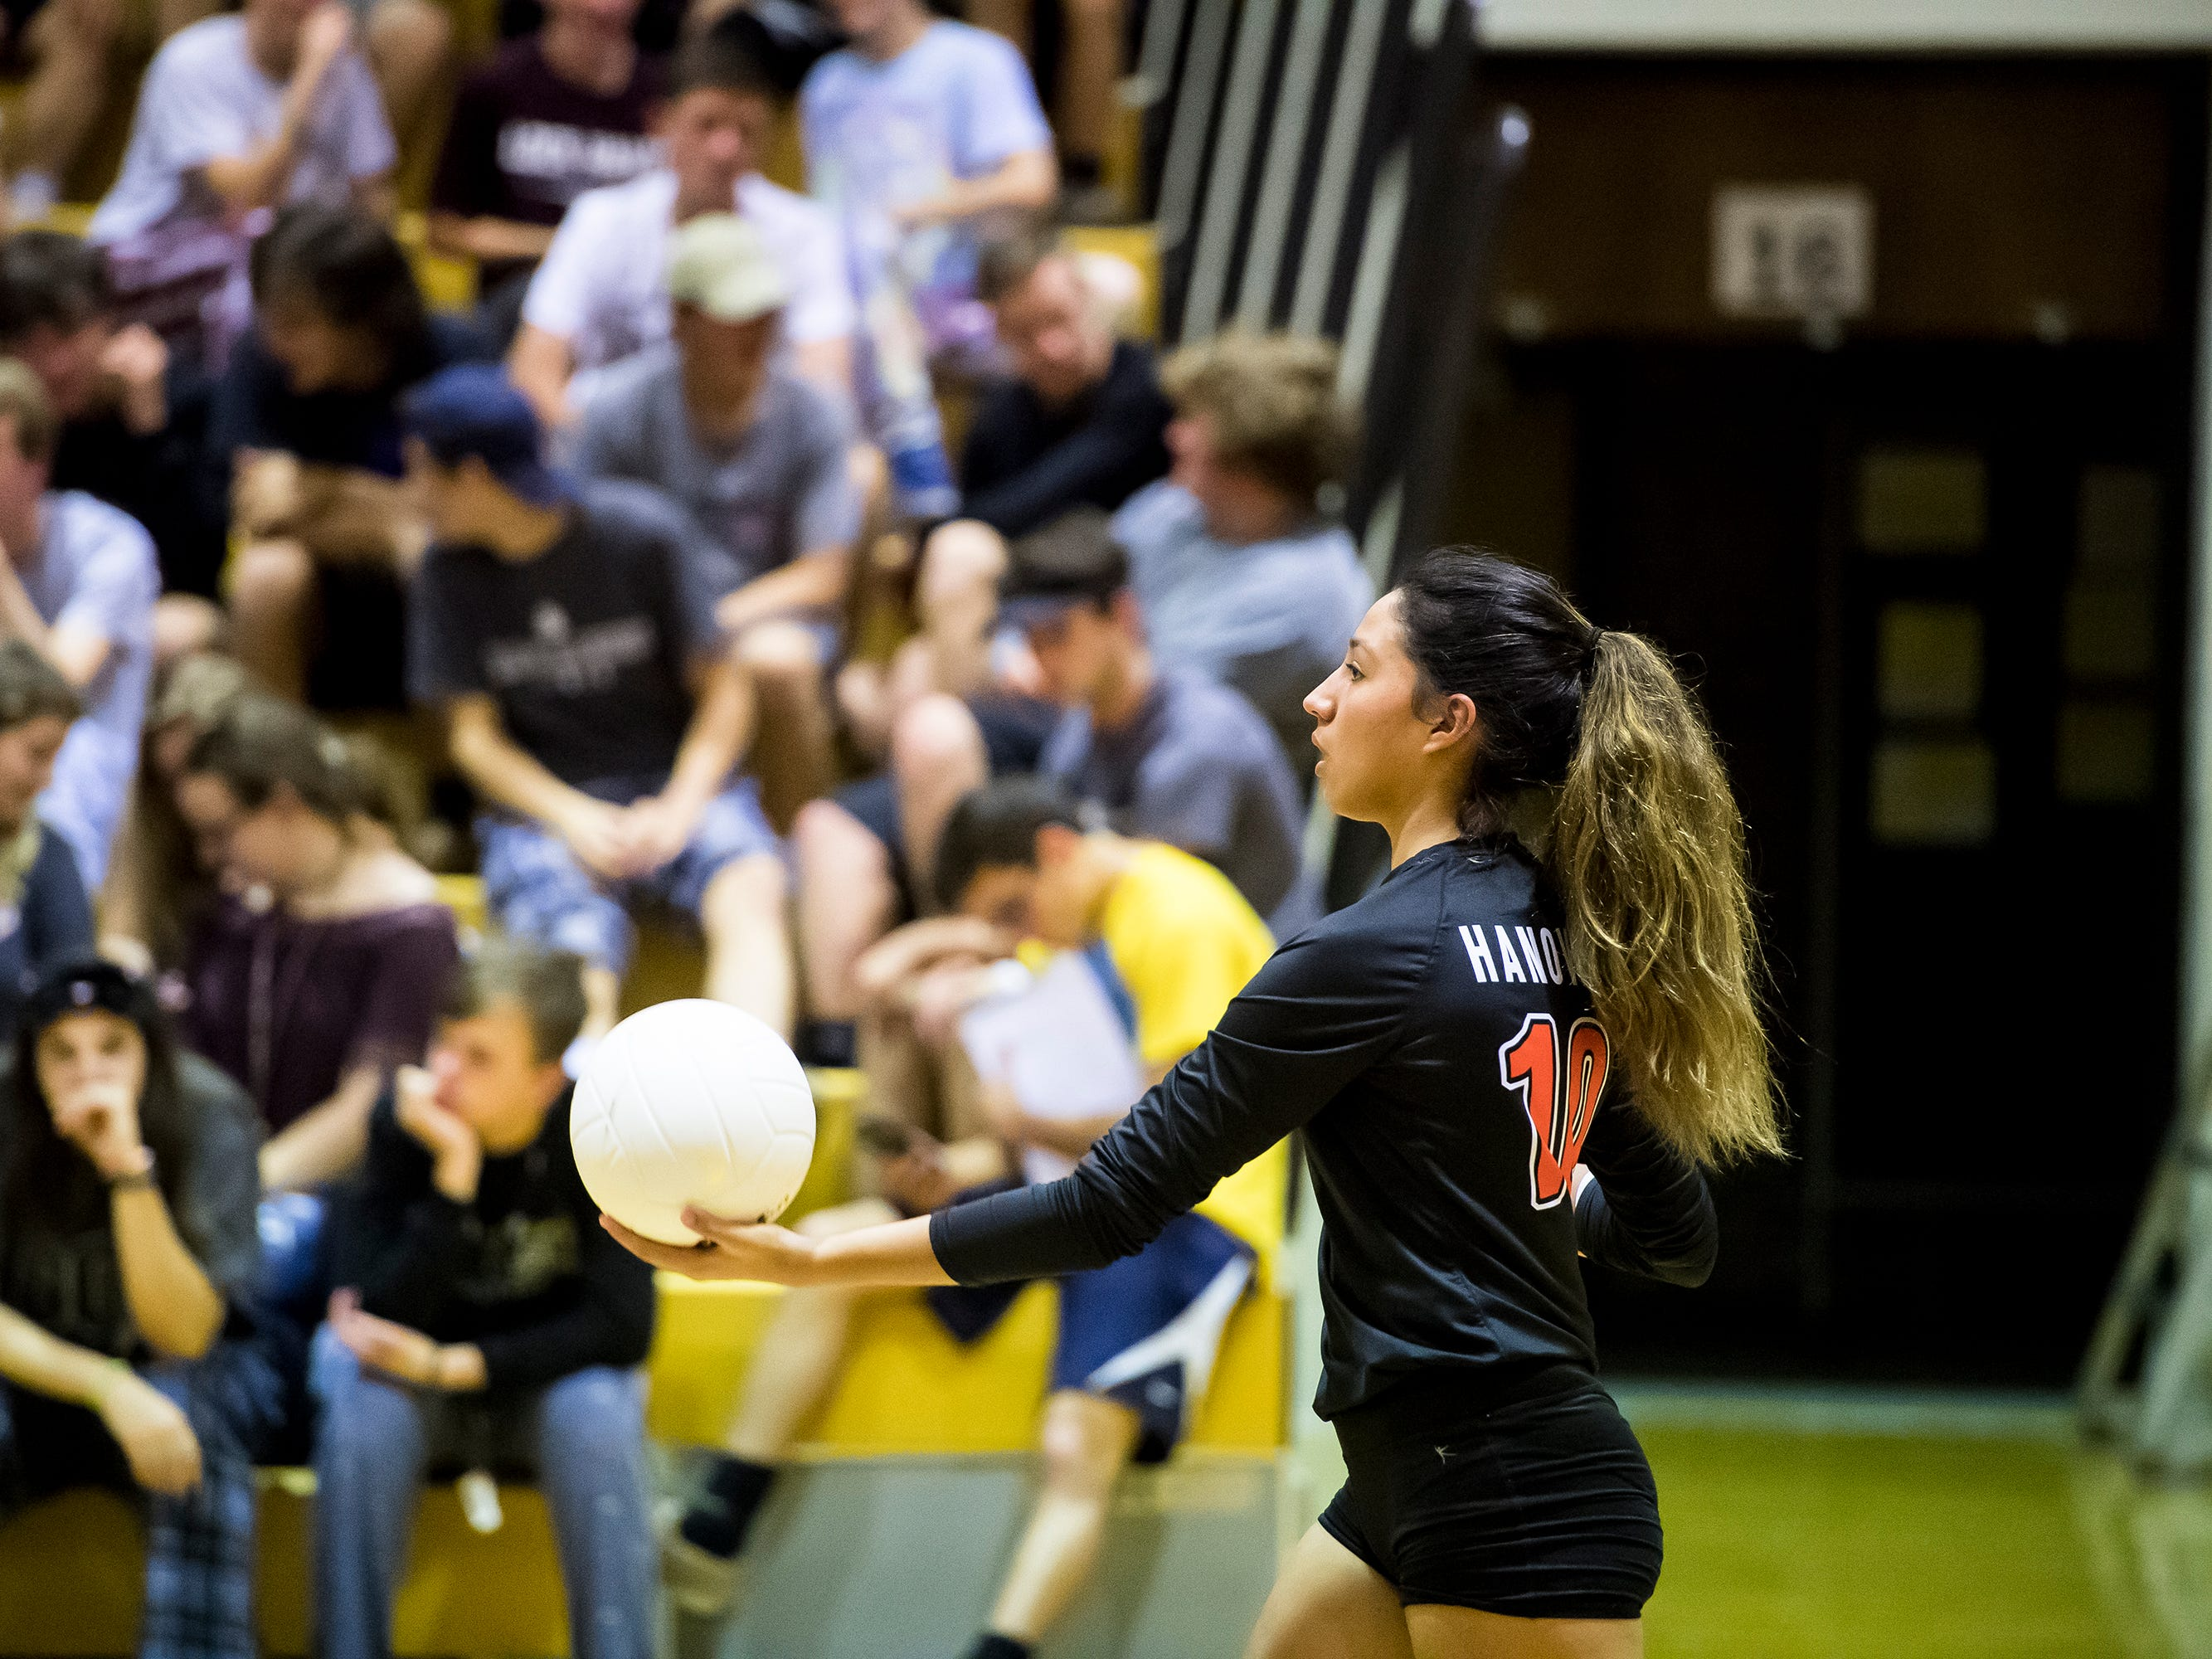 Hanover's Nancy Hernandez prepares to serve the ball to Delone Catholic on Tuesday, September 18, 2018. The Hawkettes fell in three straight sets;  25-16, 25-19, 25-14.